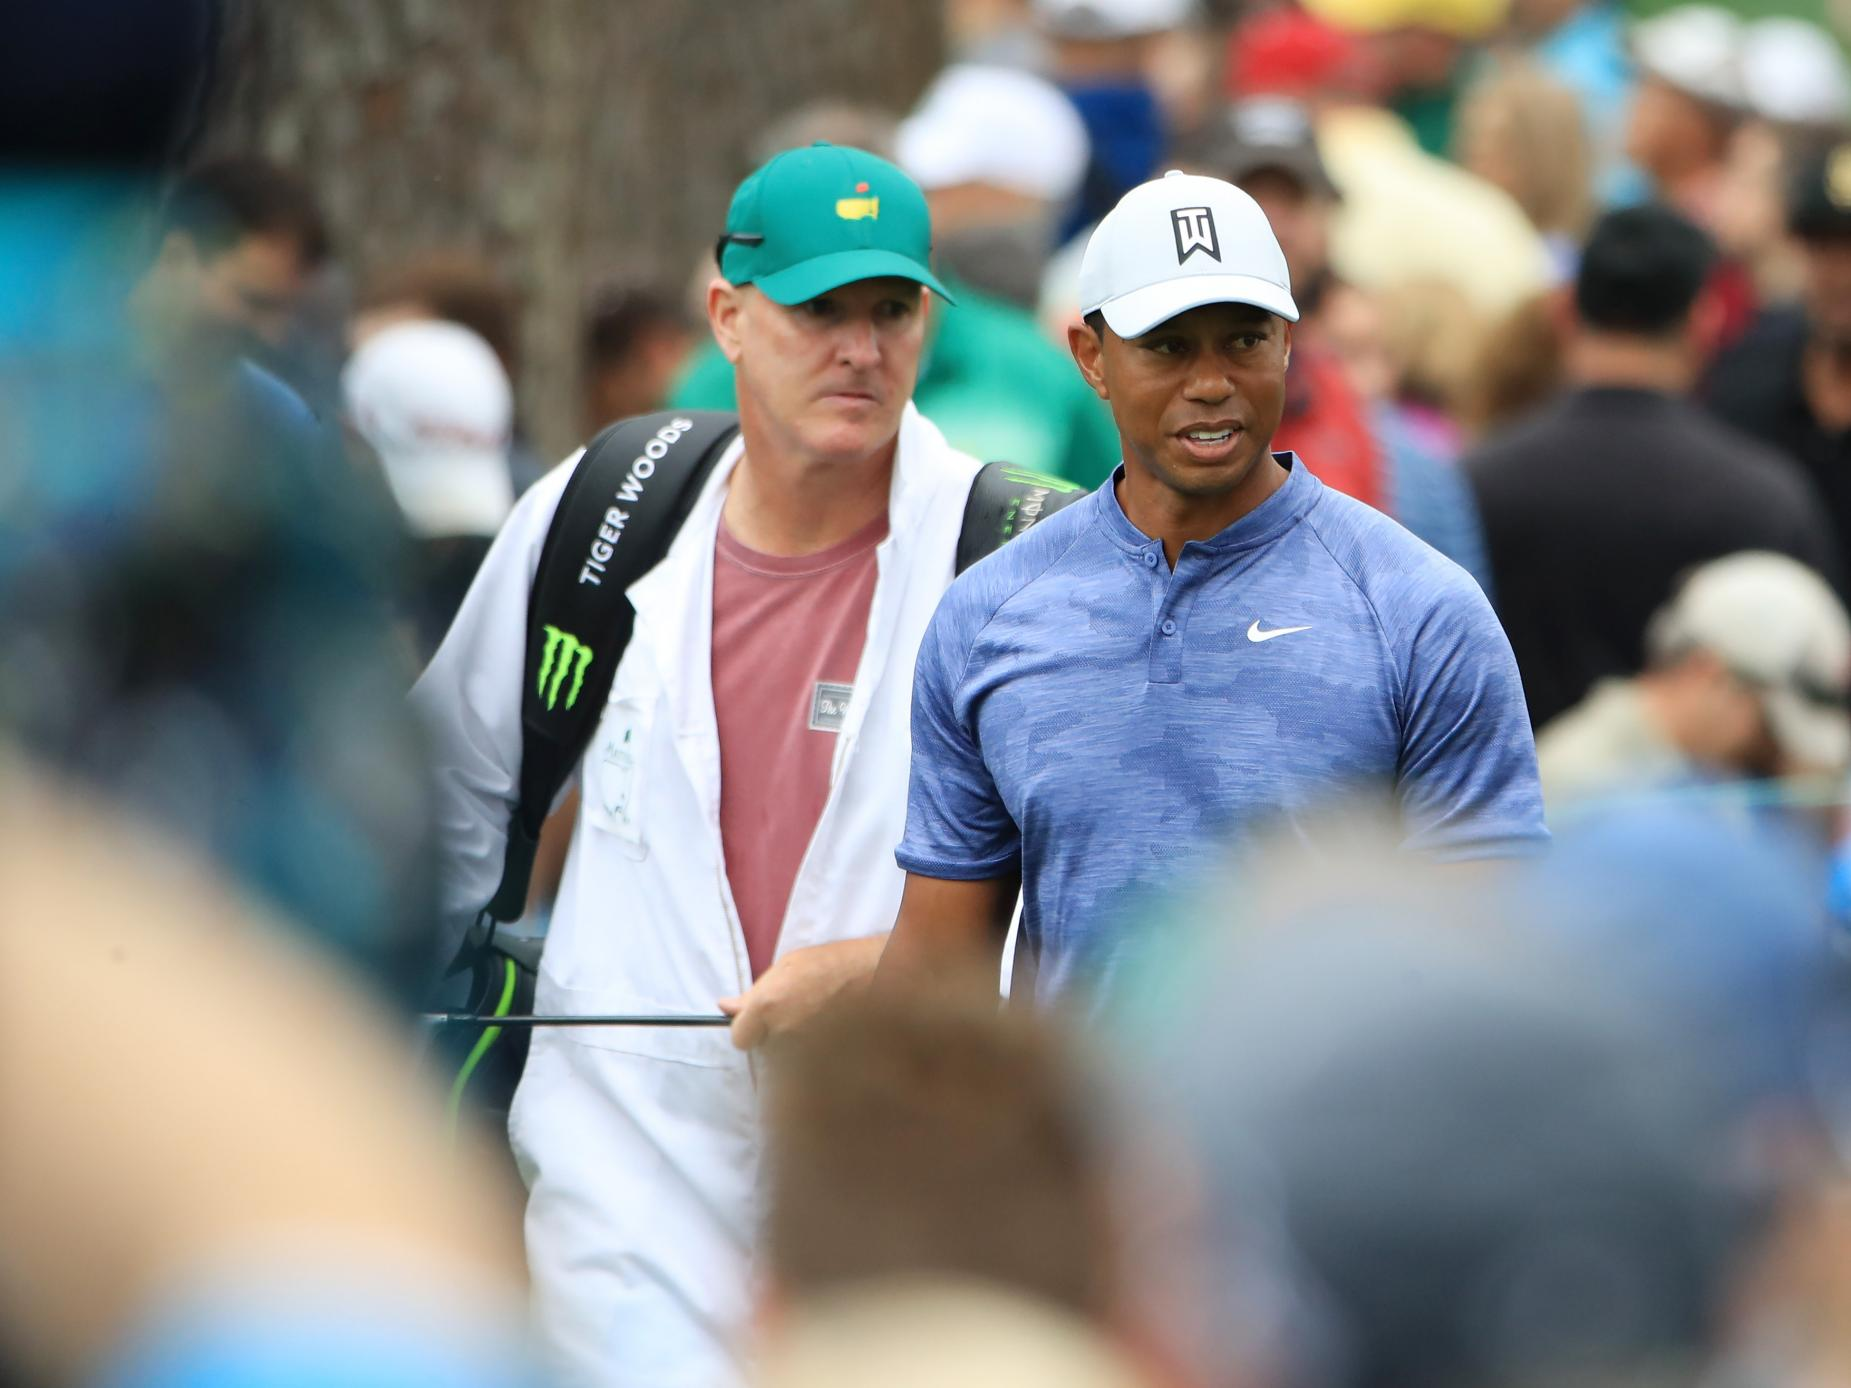 Tiger Woods 2019 Masters - Preview Day 1